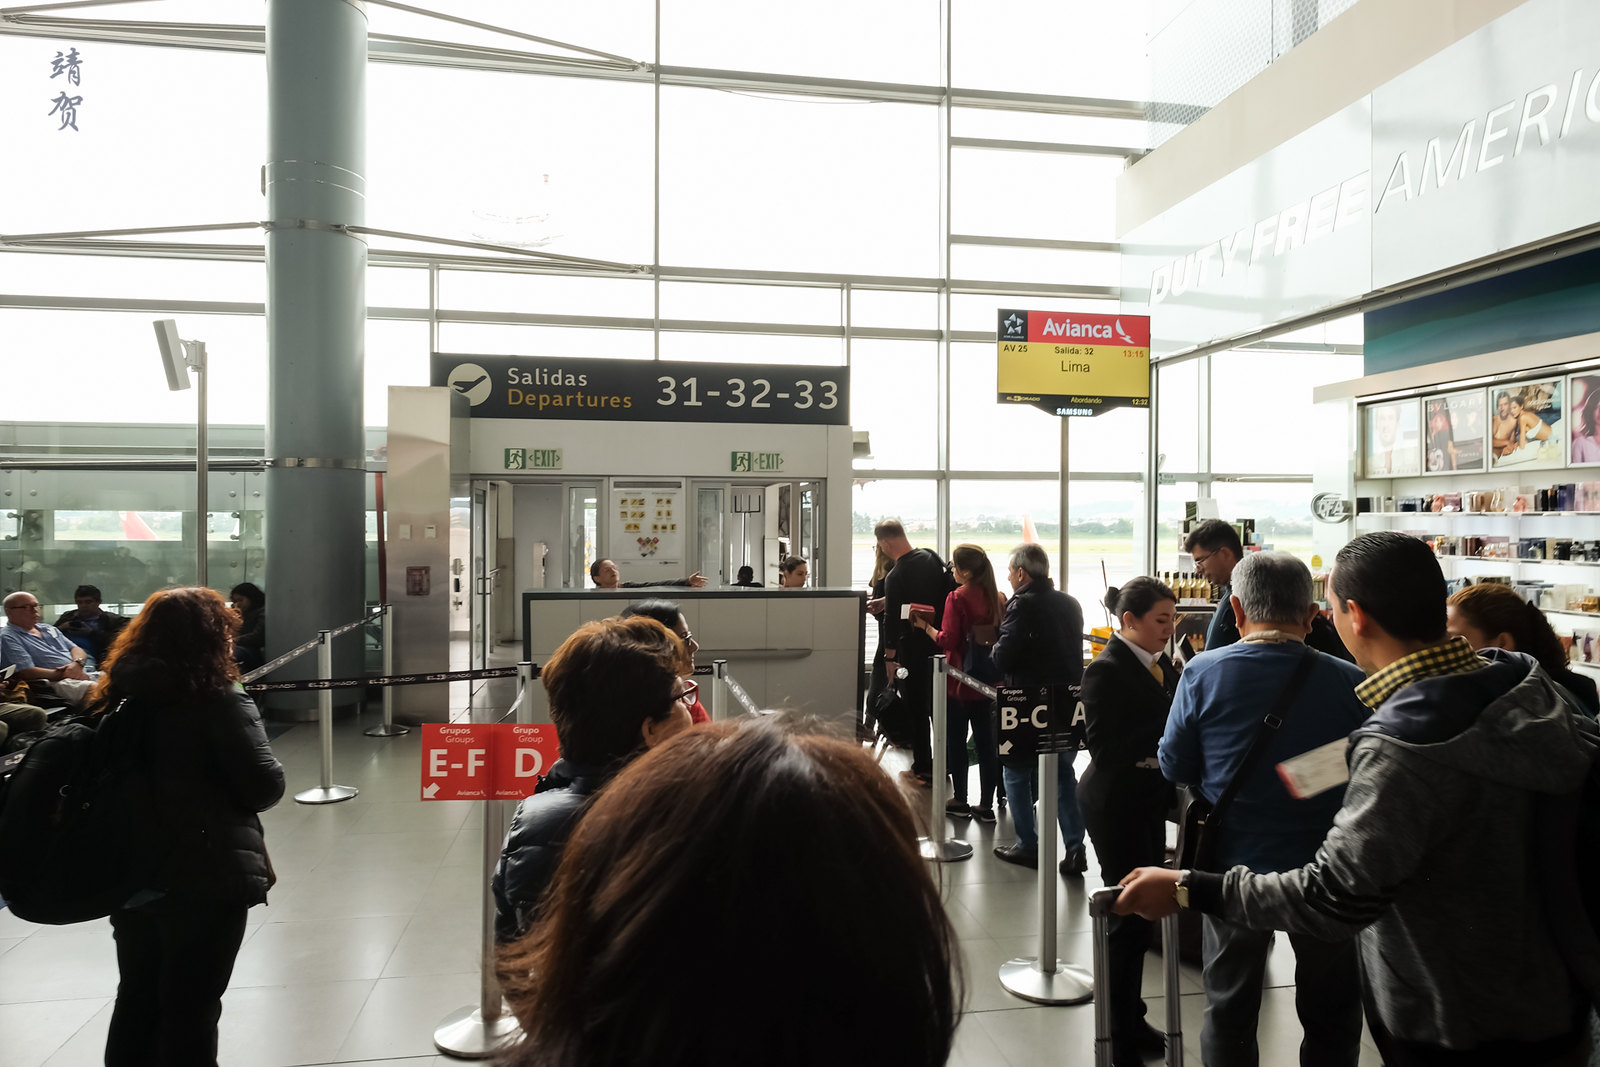 Queues for boarding